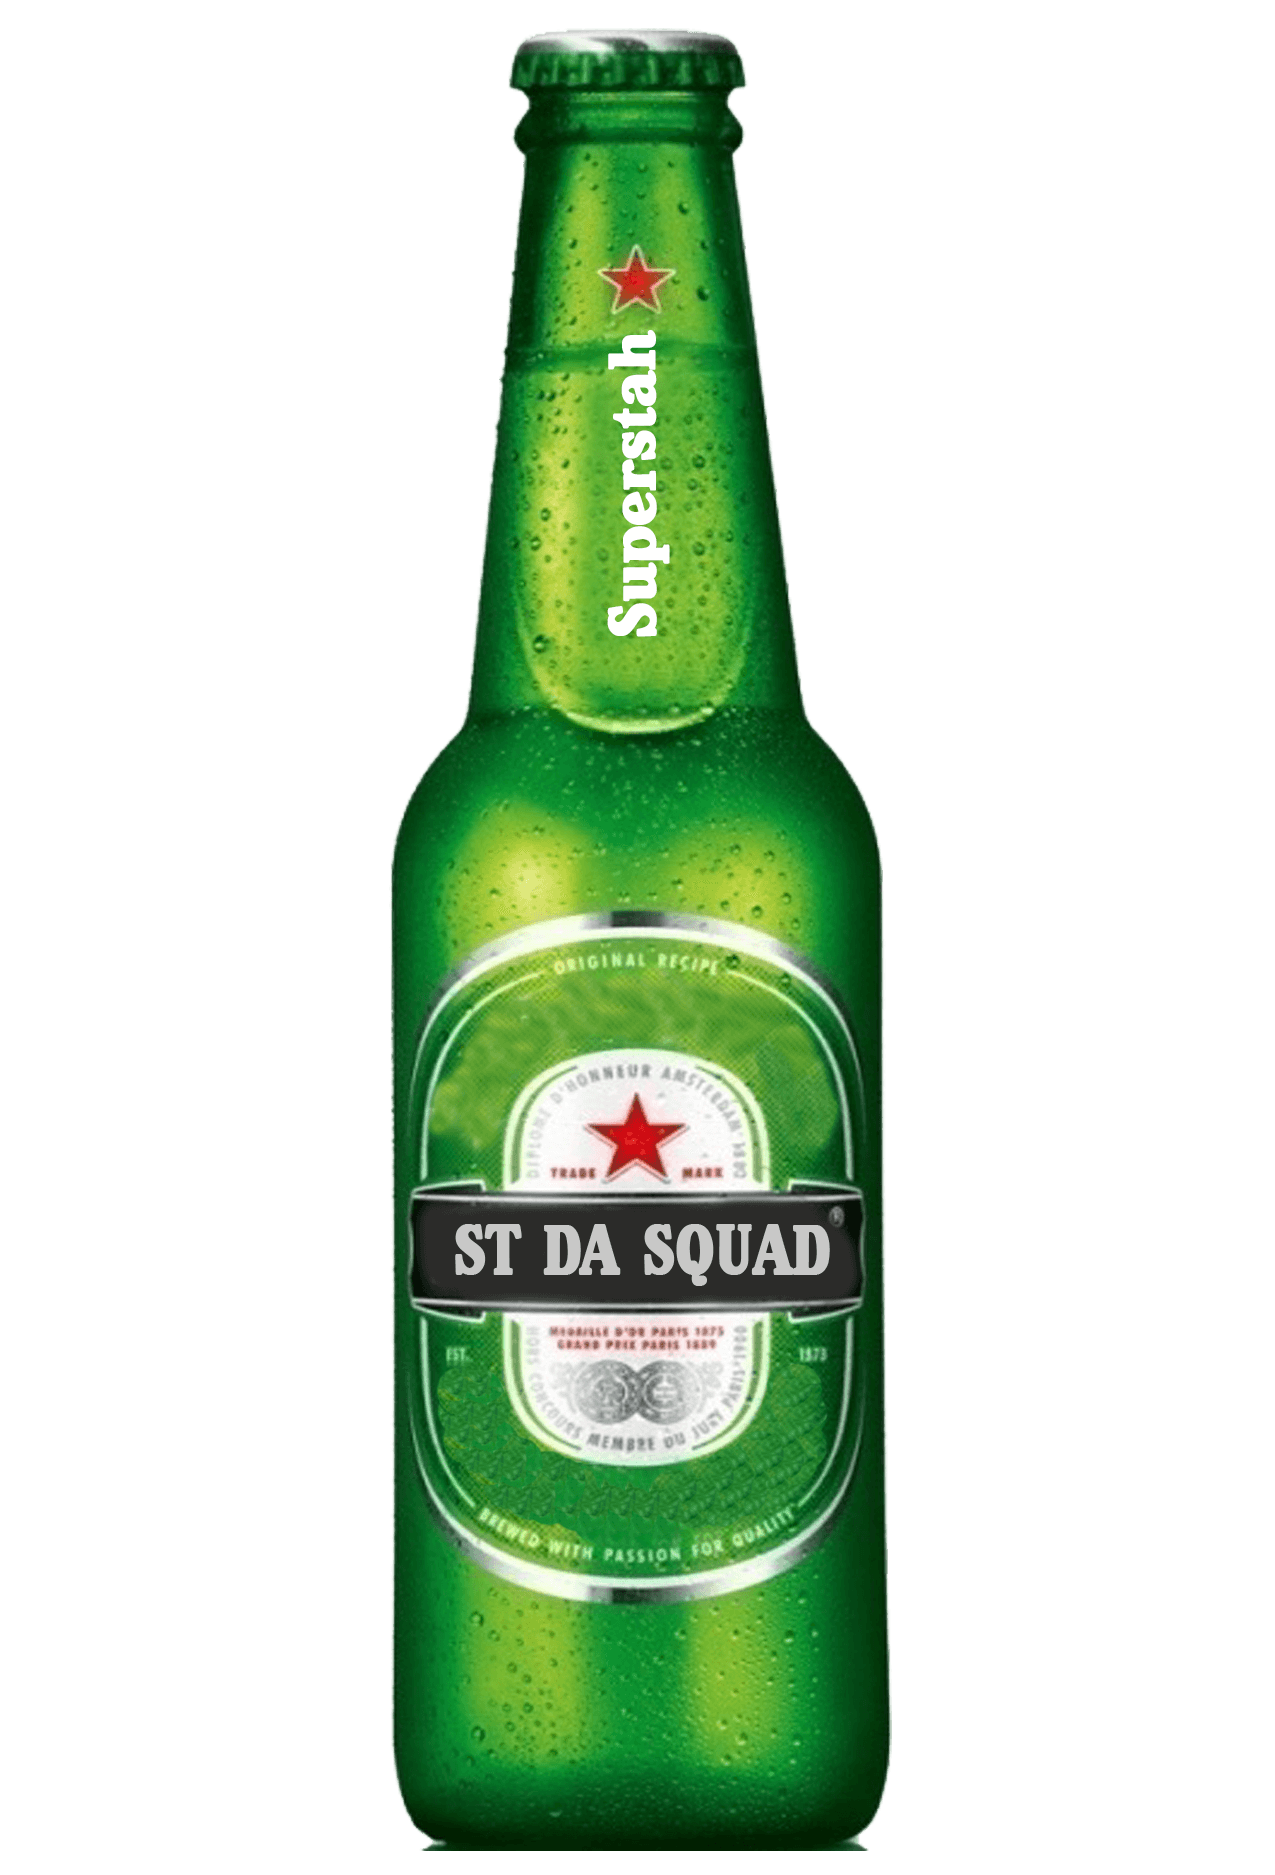 Beer Bottle Png Image PNG Image - Bottle PNG